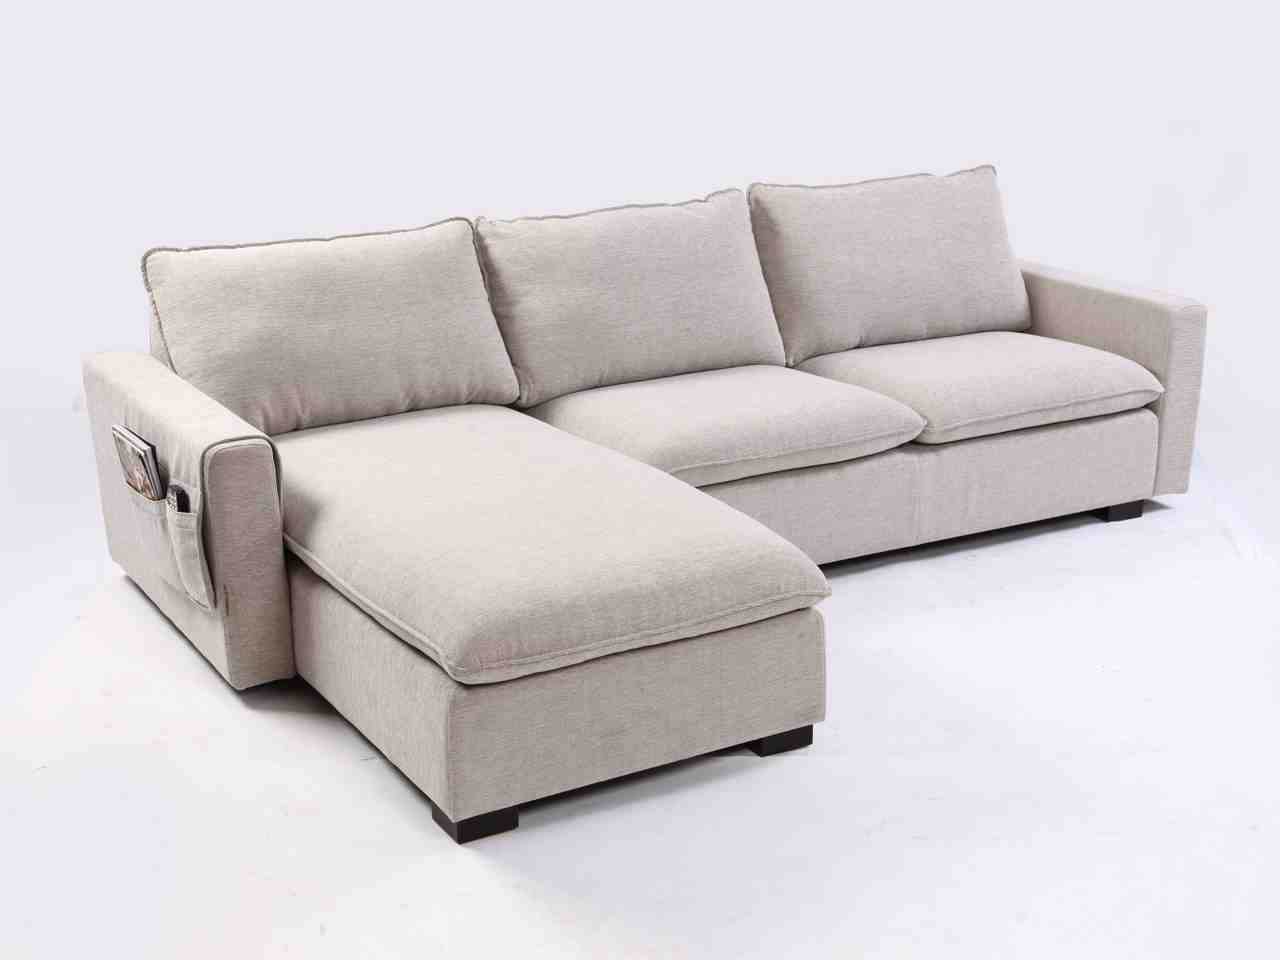 l shape sofa cover set dr sofat st georges home furniture design